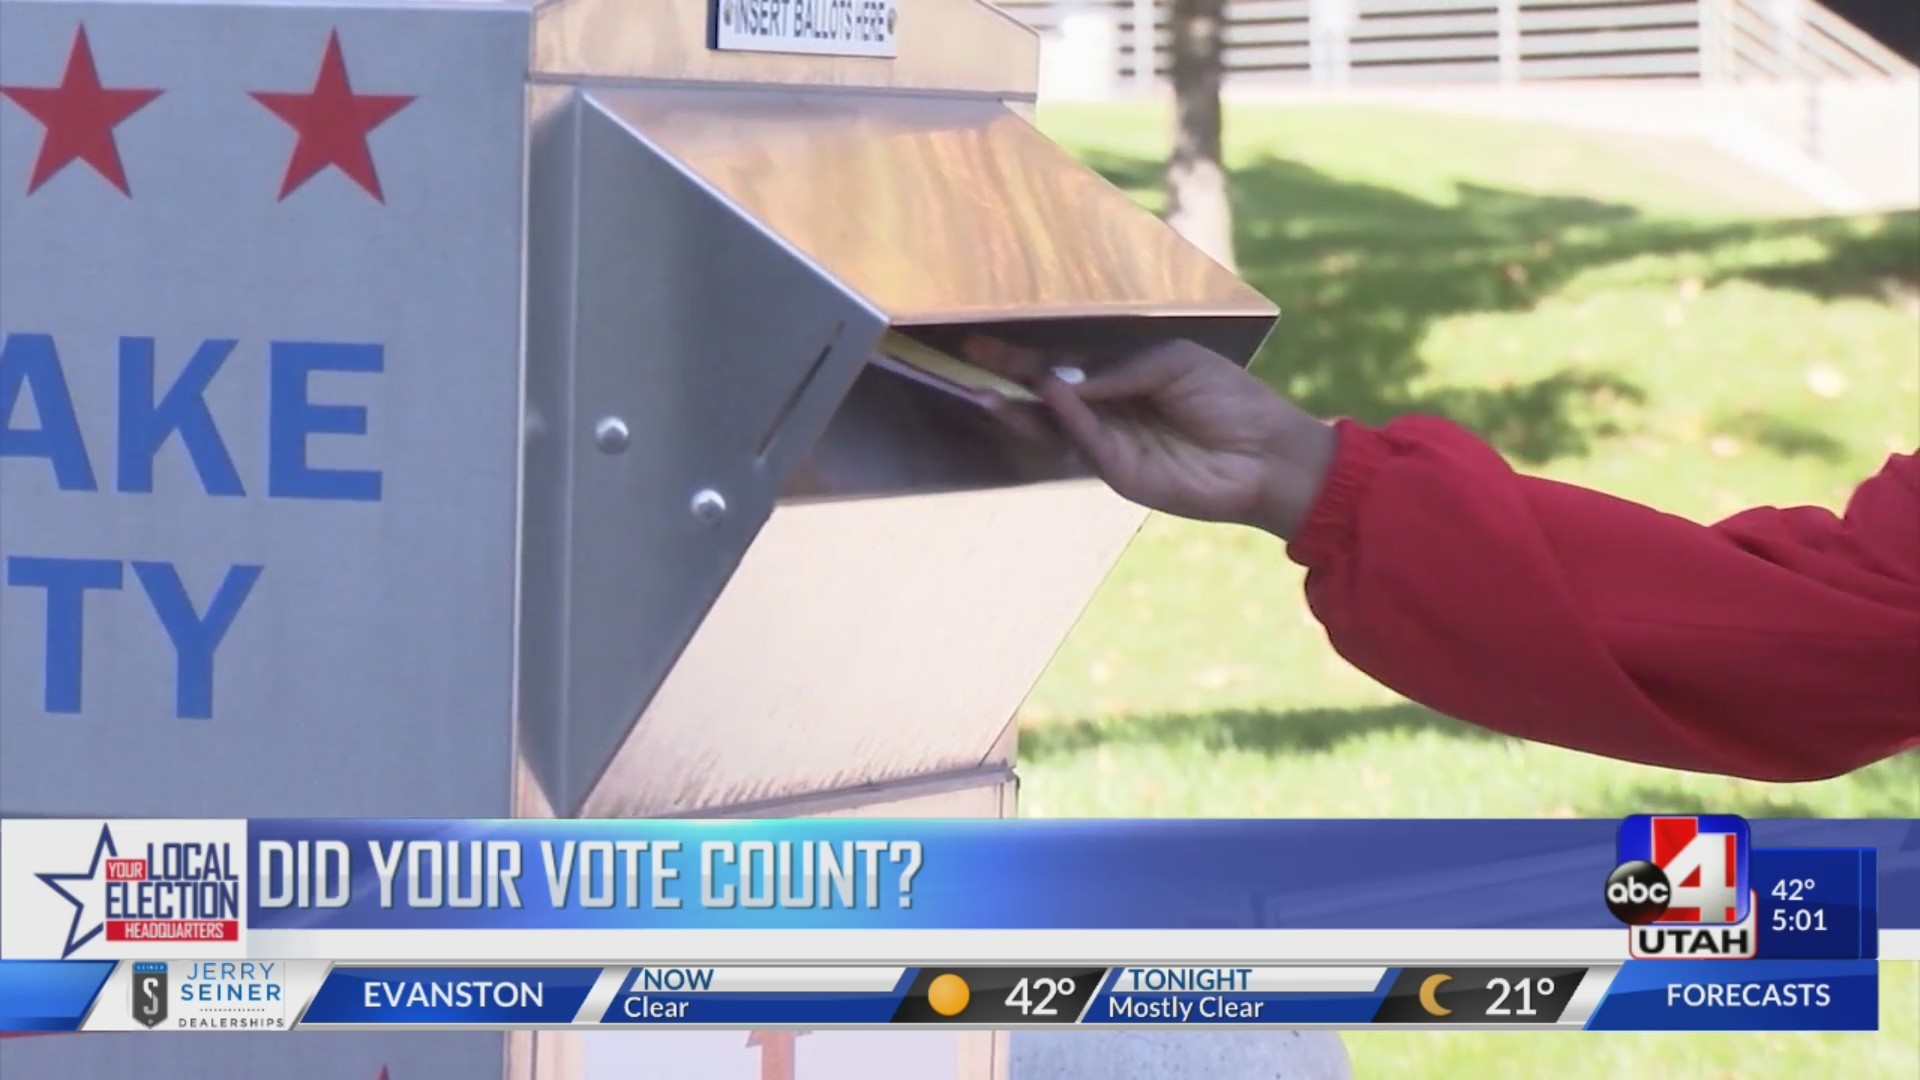 Did your vote count?